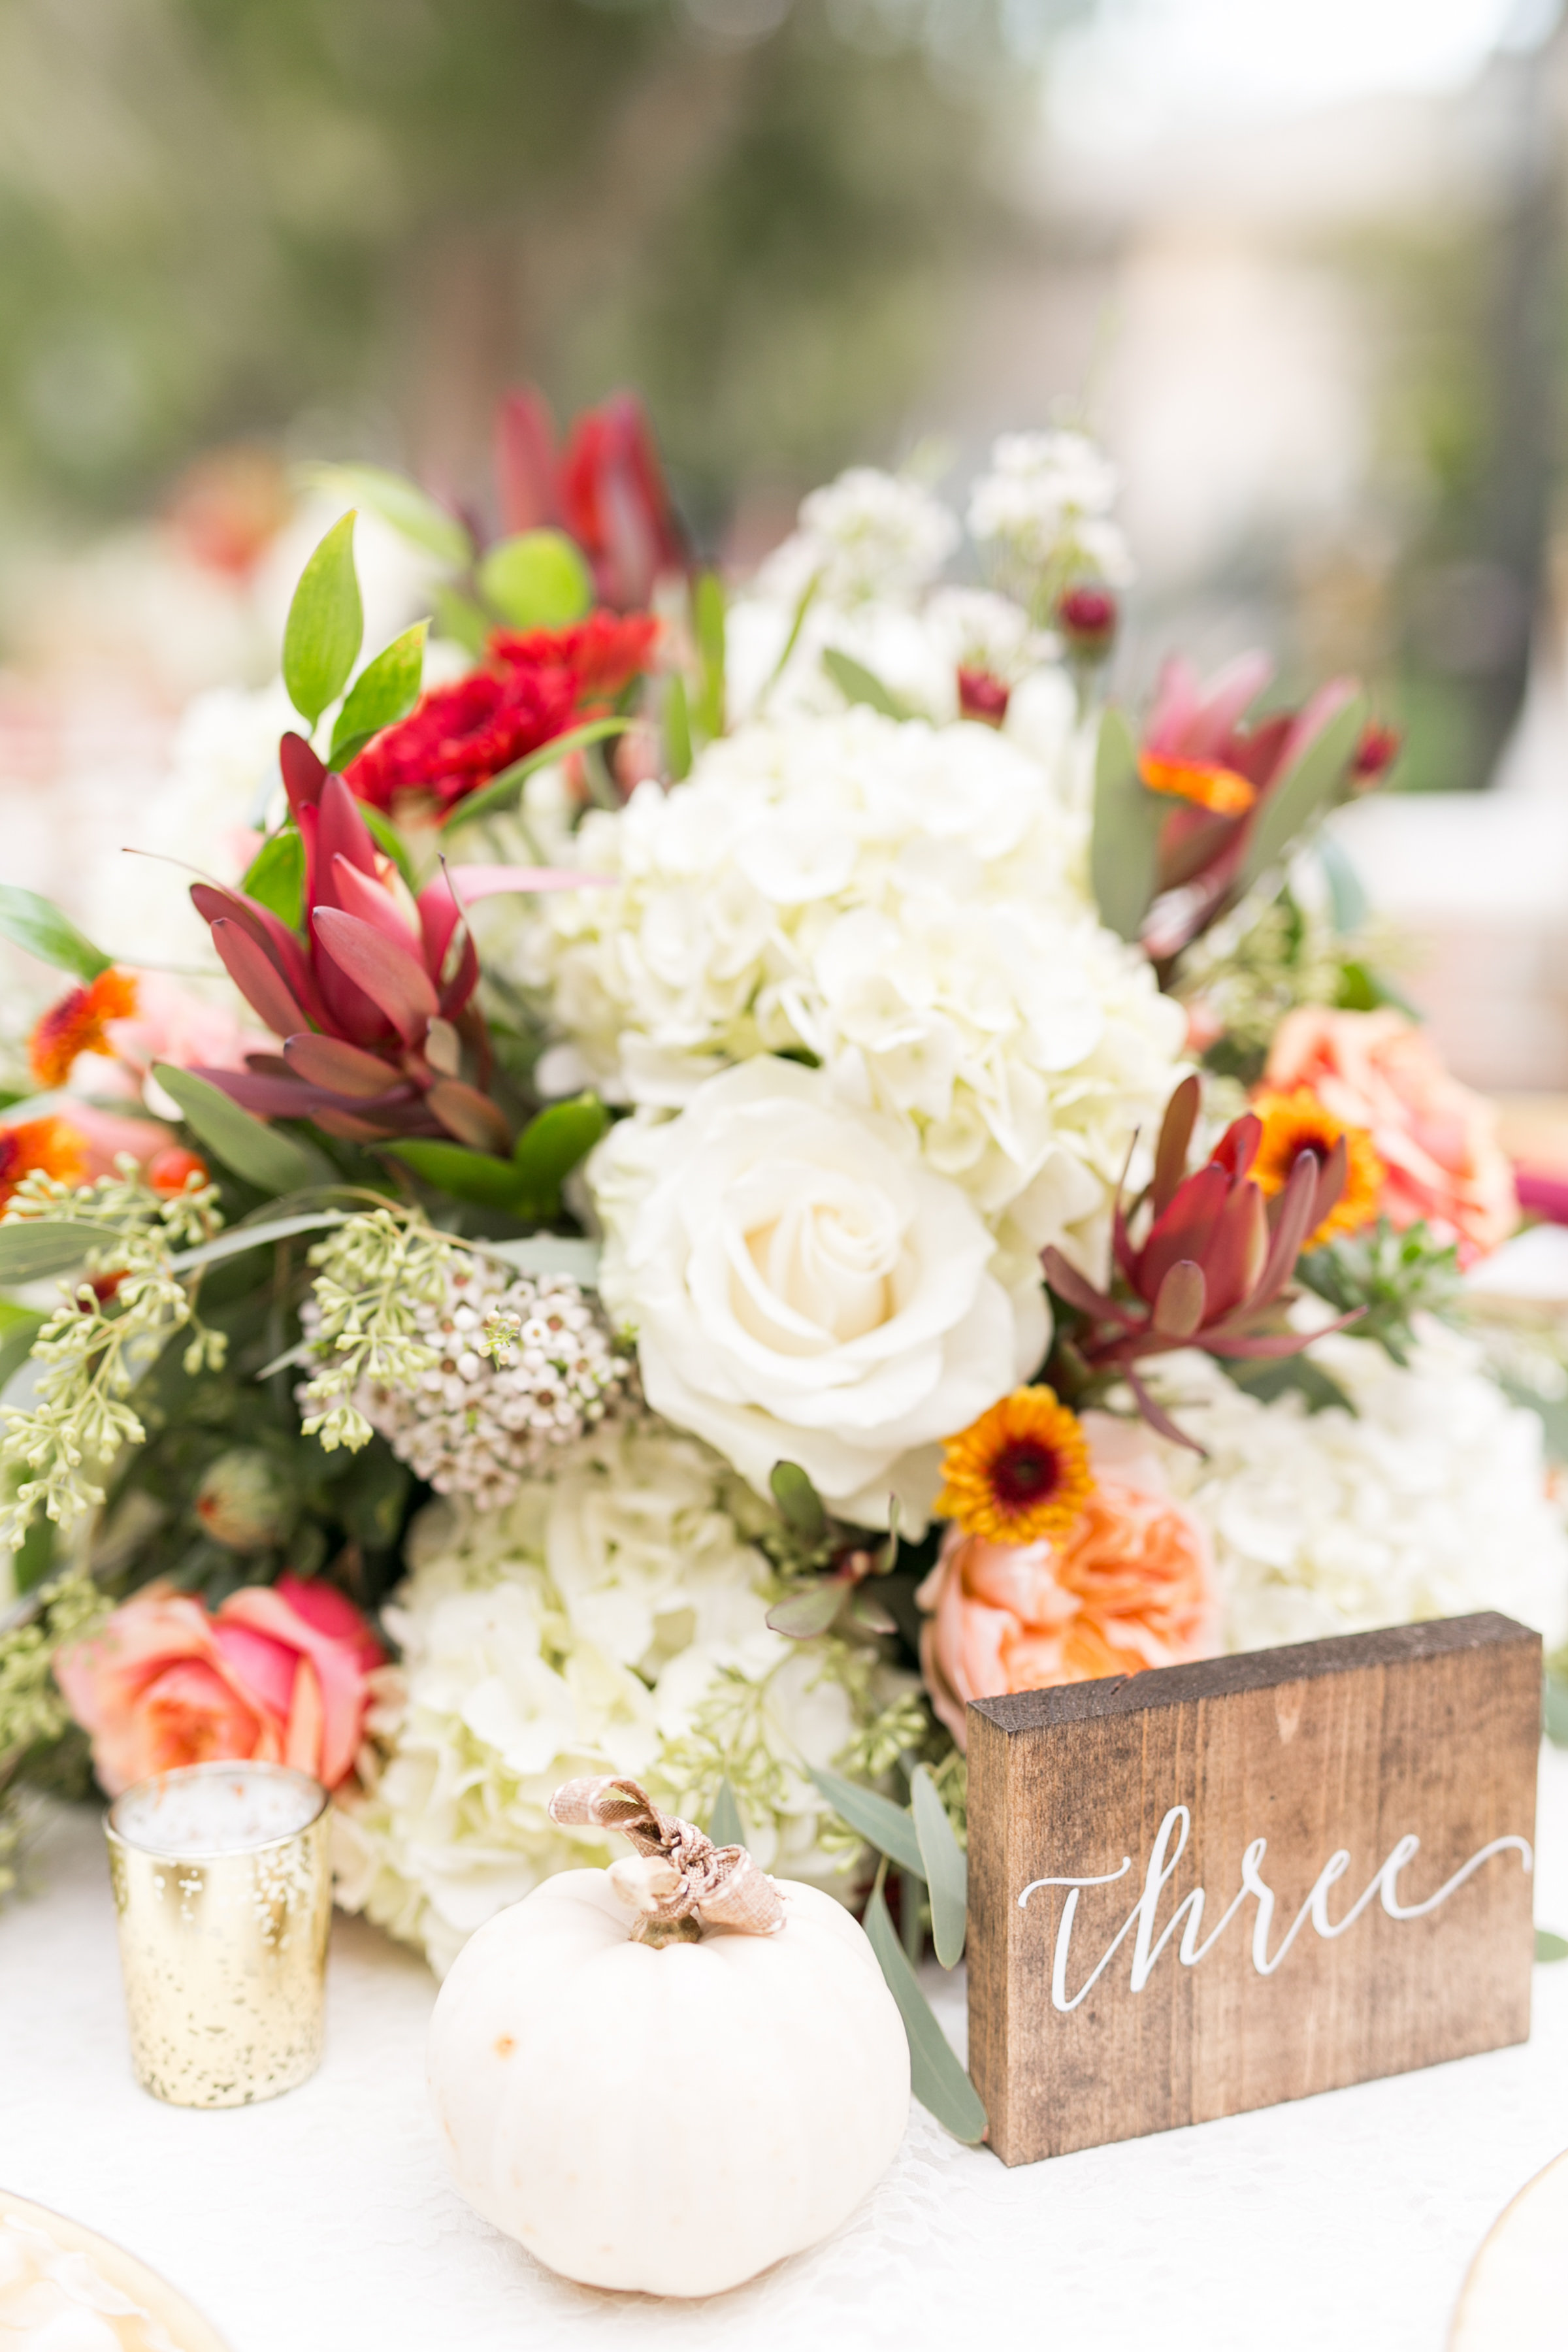 Fall-Hued Centerpiece with White and Red Flowers and Pumpkin Accent